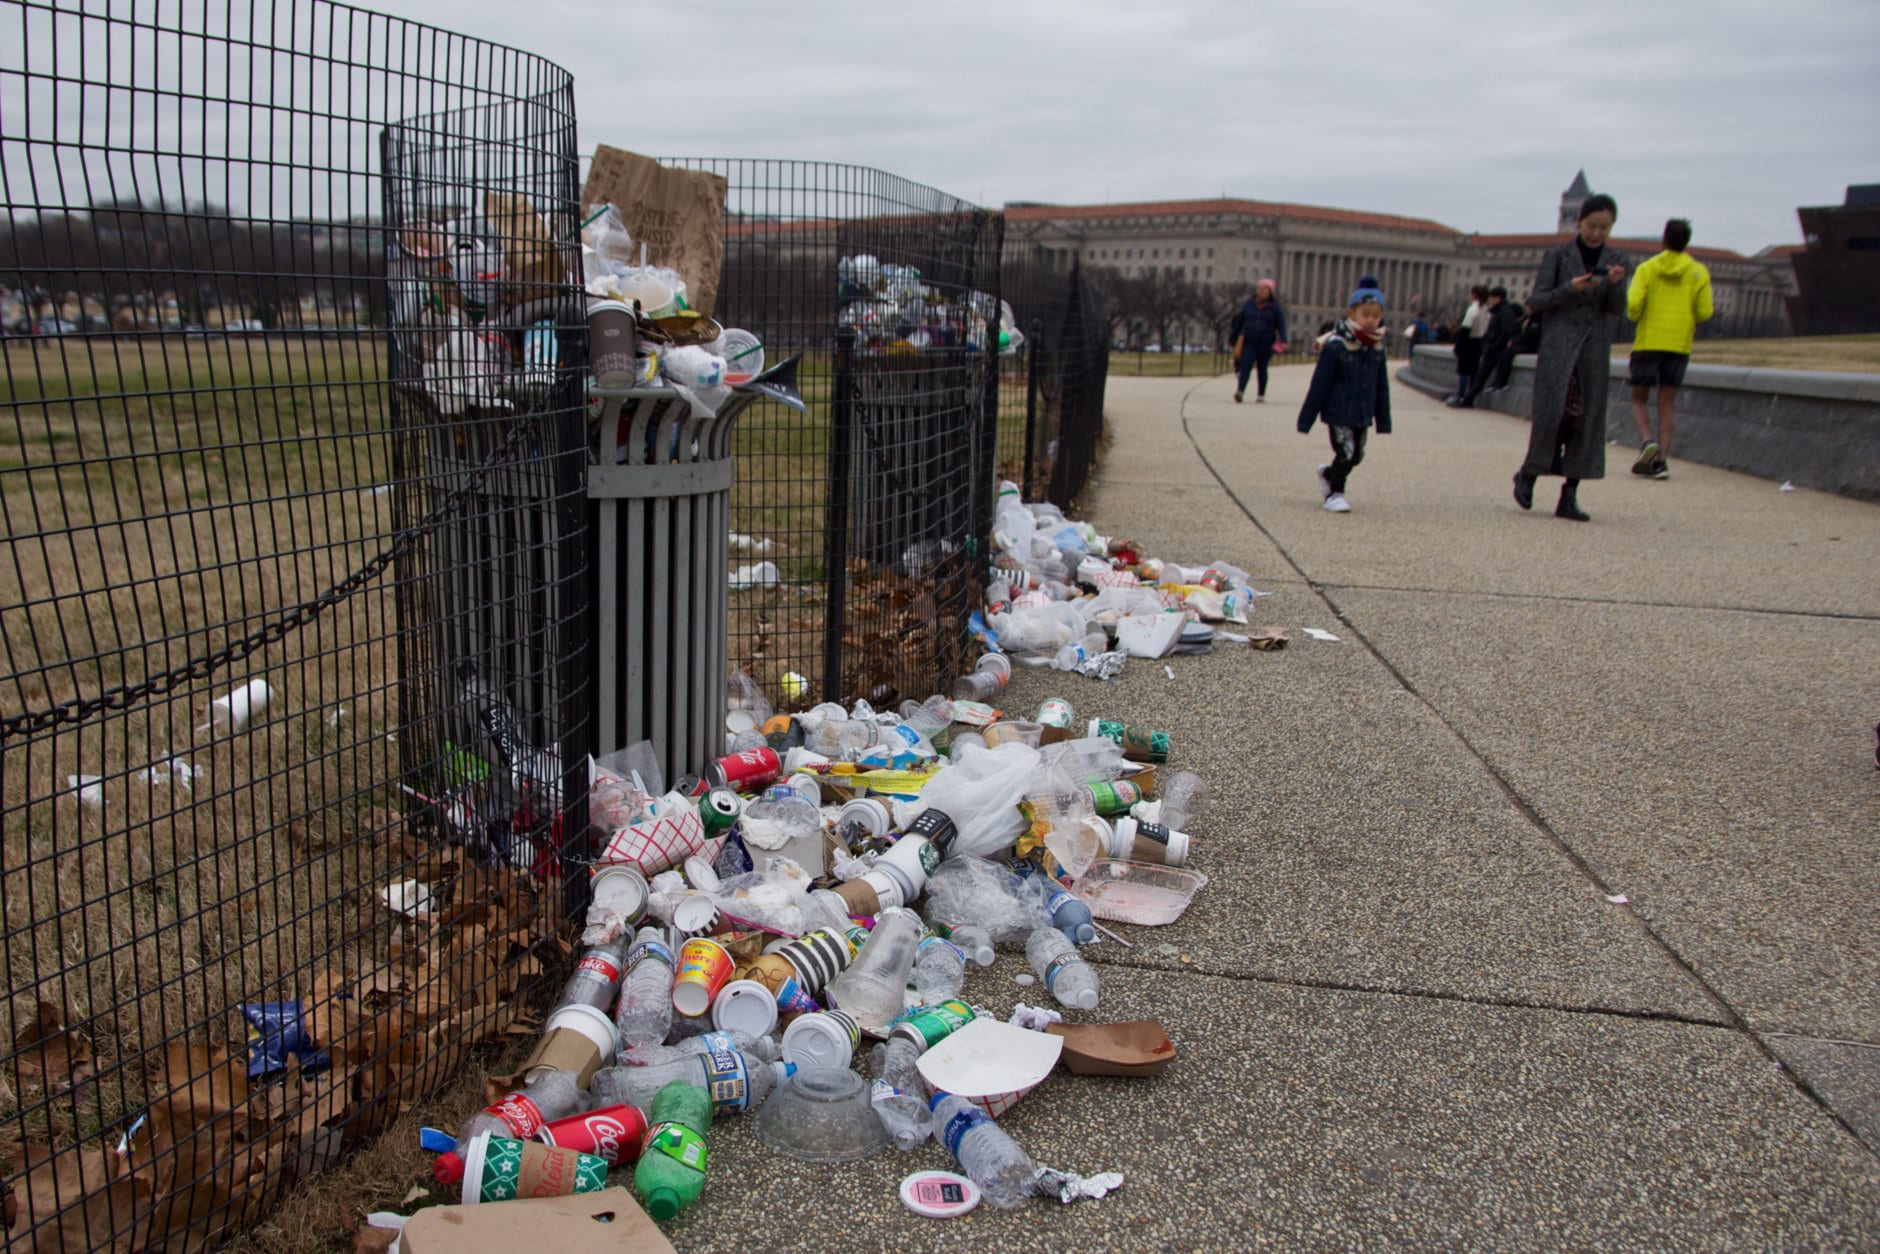 Trash overflows from garbage cans along the National Mall in D.C. on January 2, 2018. (WTOP/Alejandro Alvarez)